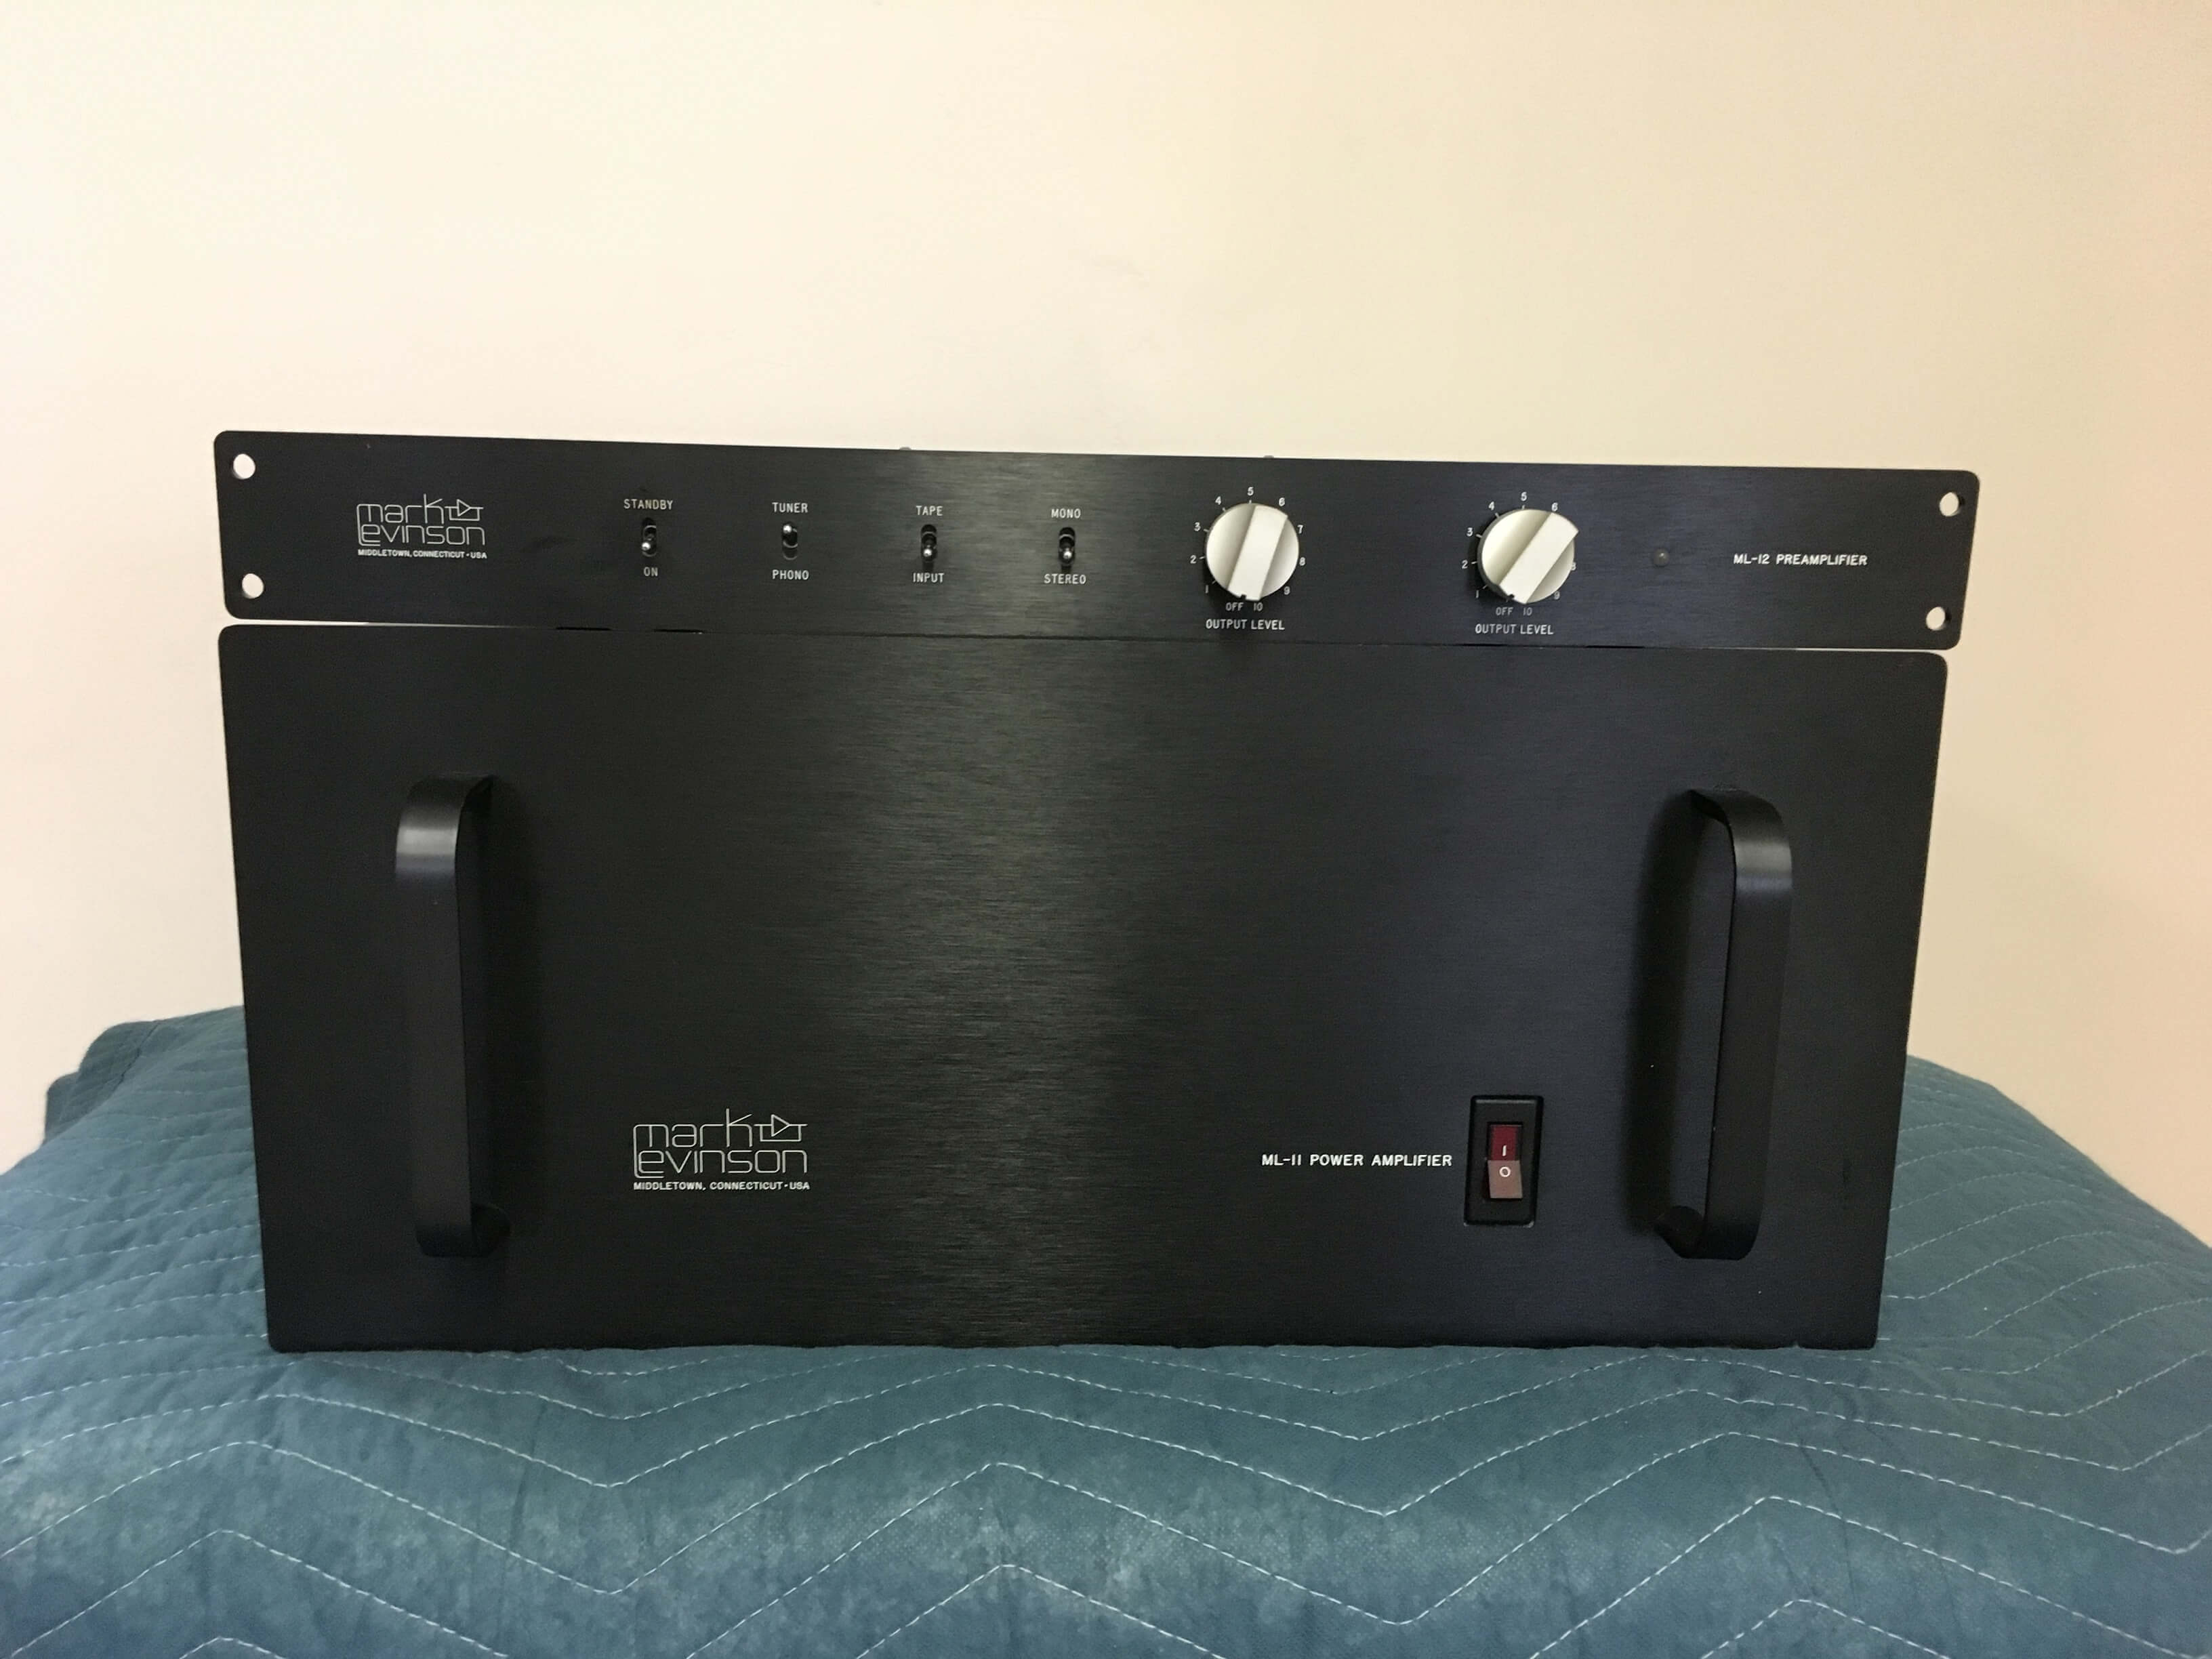 Mark Levinson ML-12 preamplifier and ML-11 power amplifier system with Camac cables